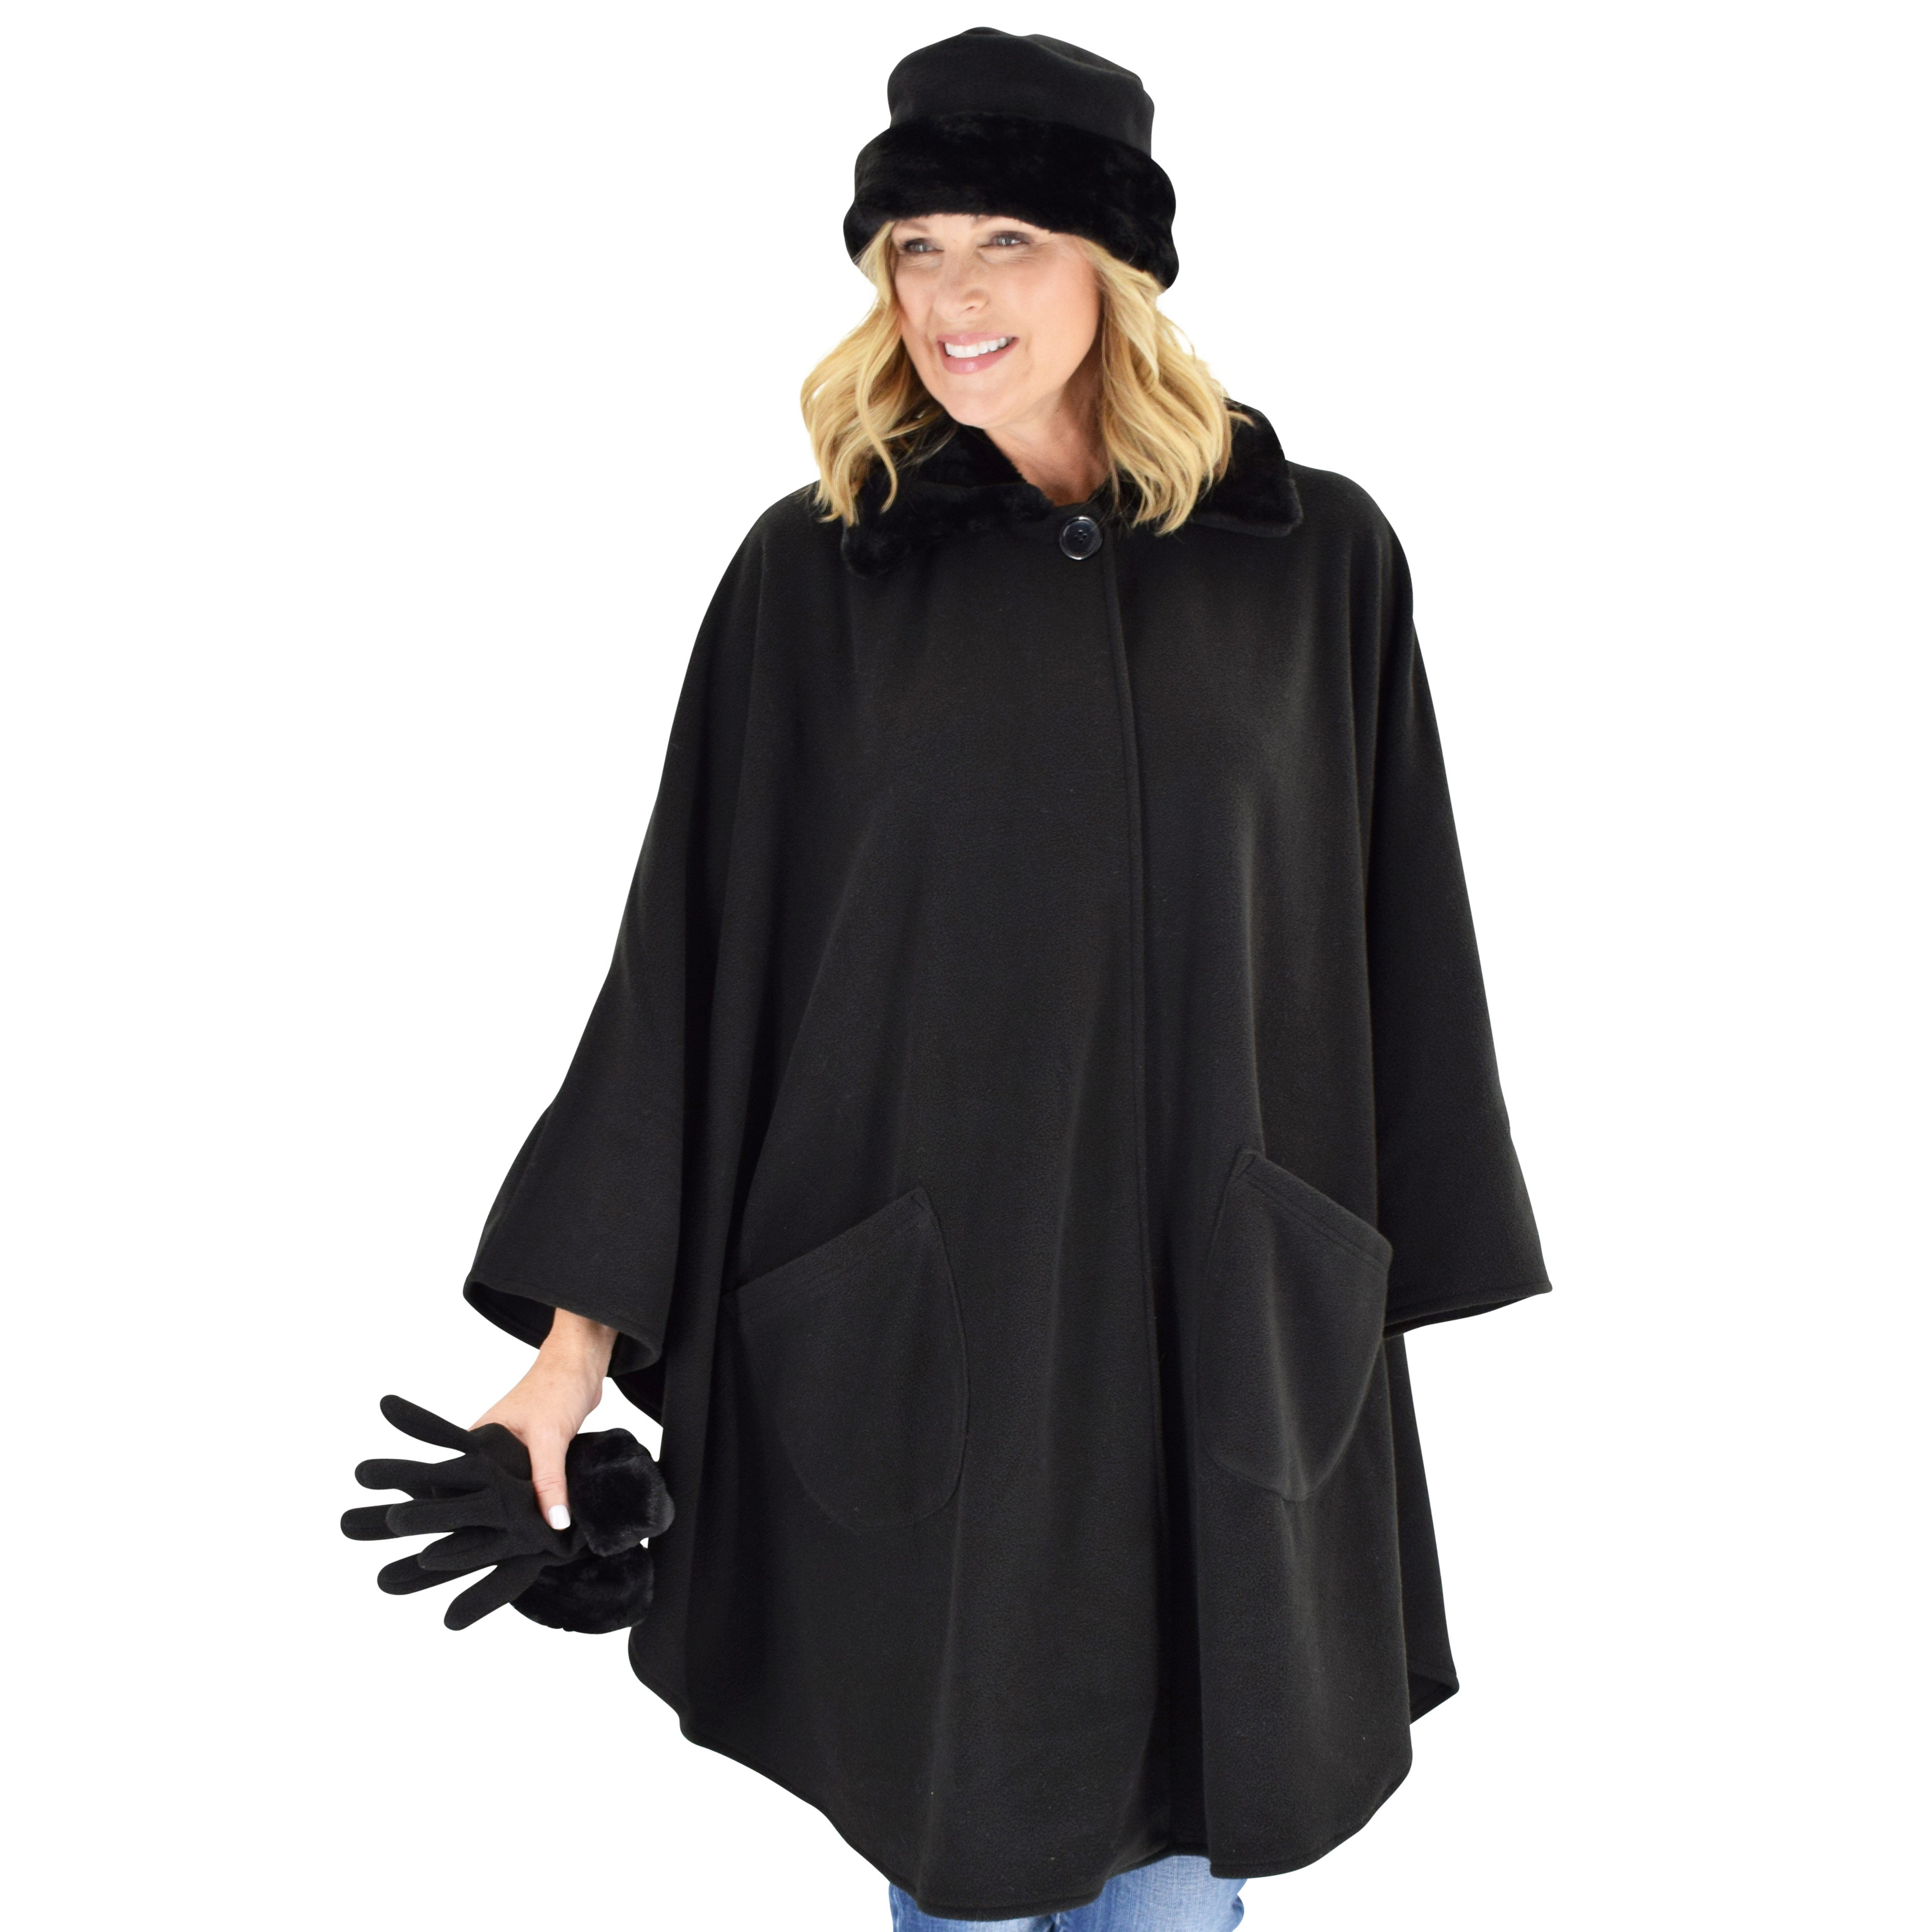 Le Moda Women's Black Fur Collar Polar Fleece Wrap with Matching Gloves and Hat-One Size Fits All at Linda Anderson. color_black